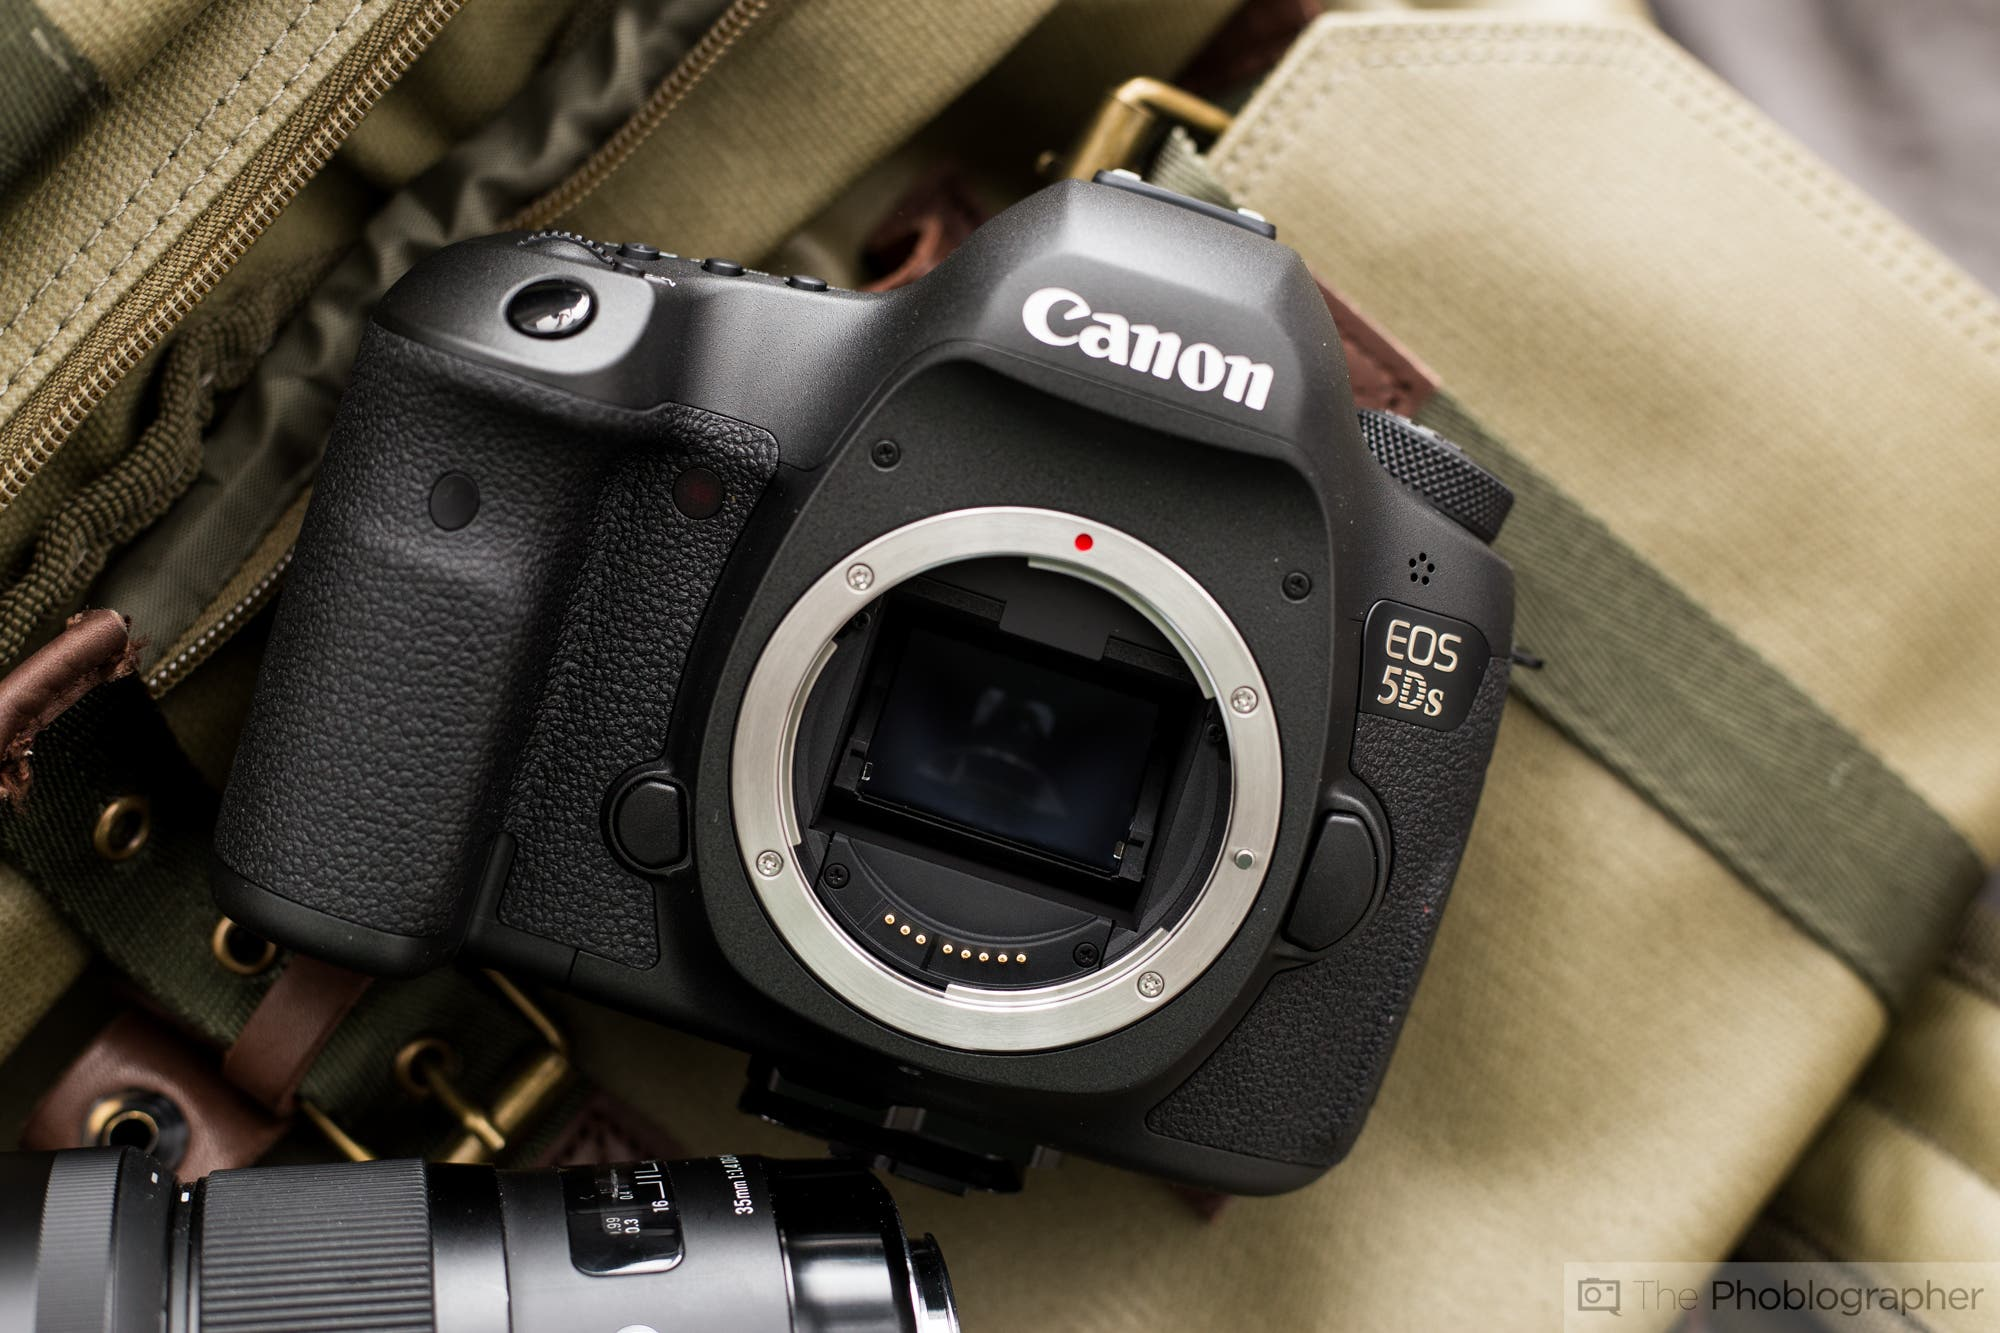 The Next Canon 5D Said to be Sports Oriented